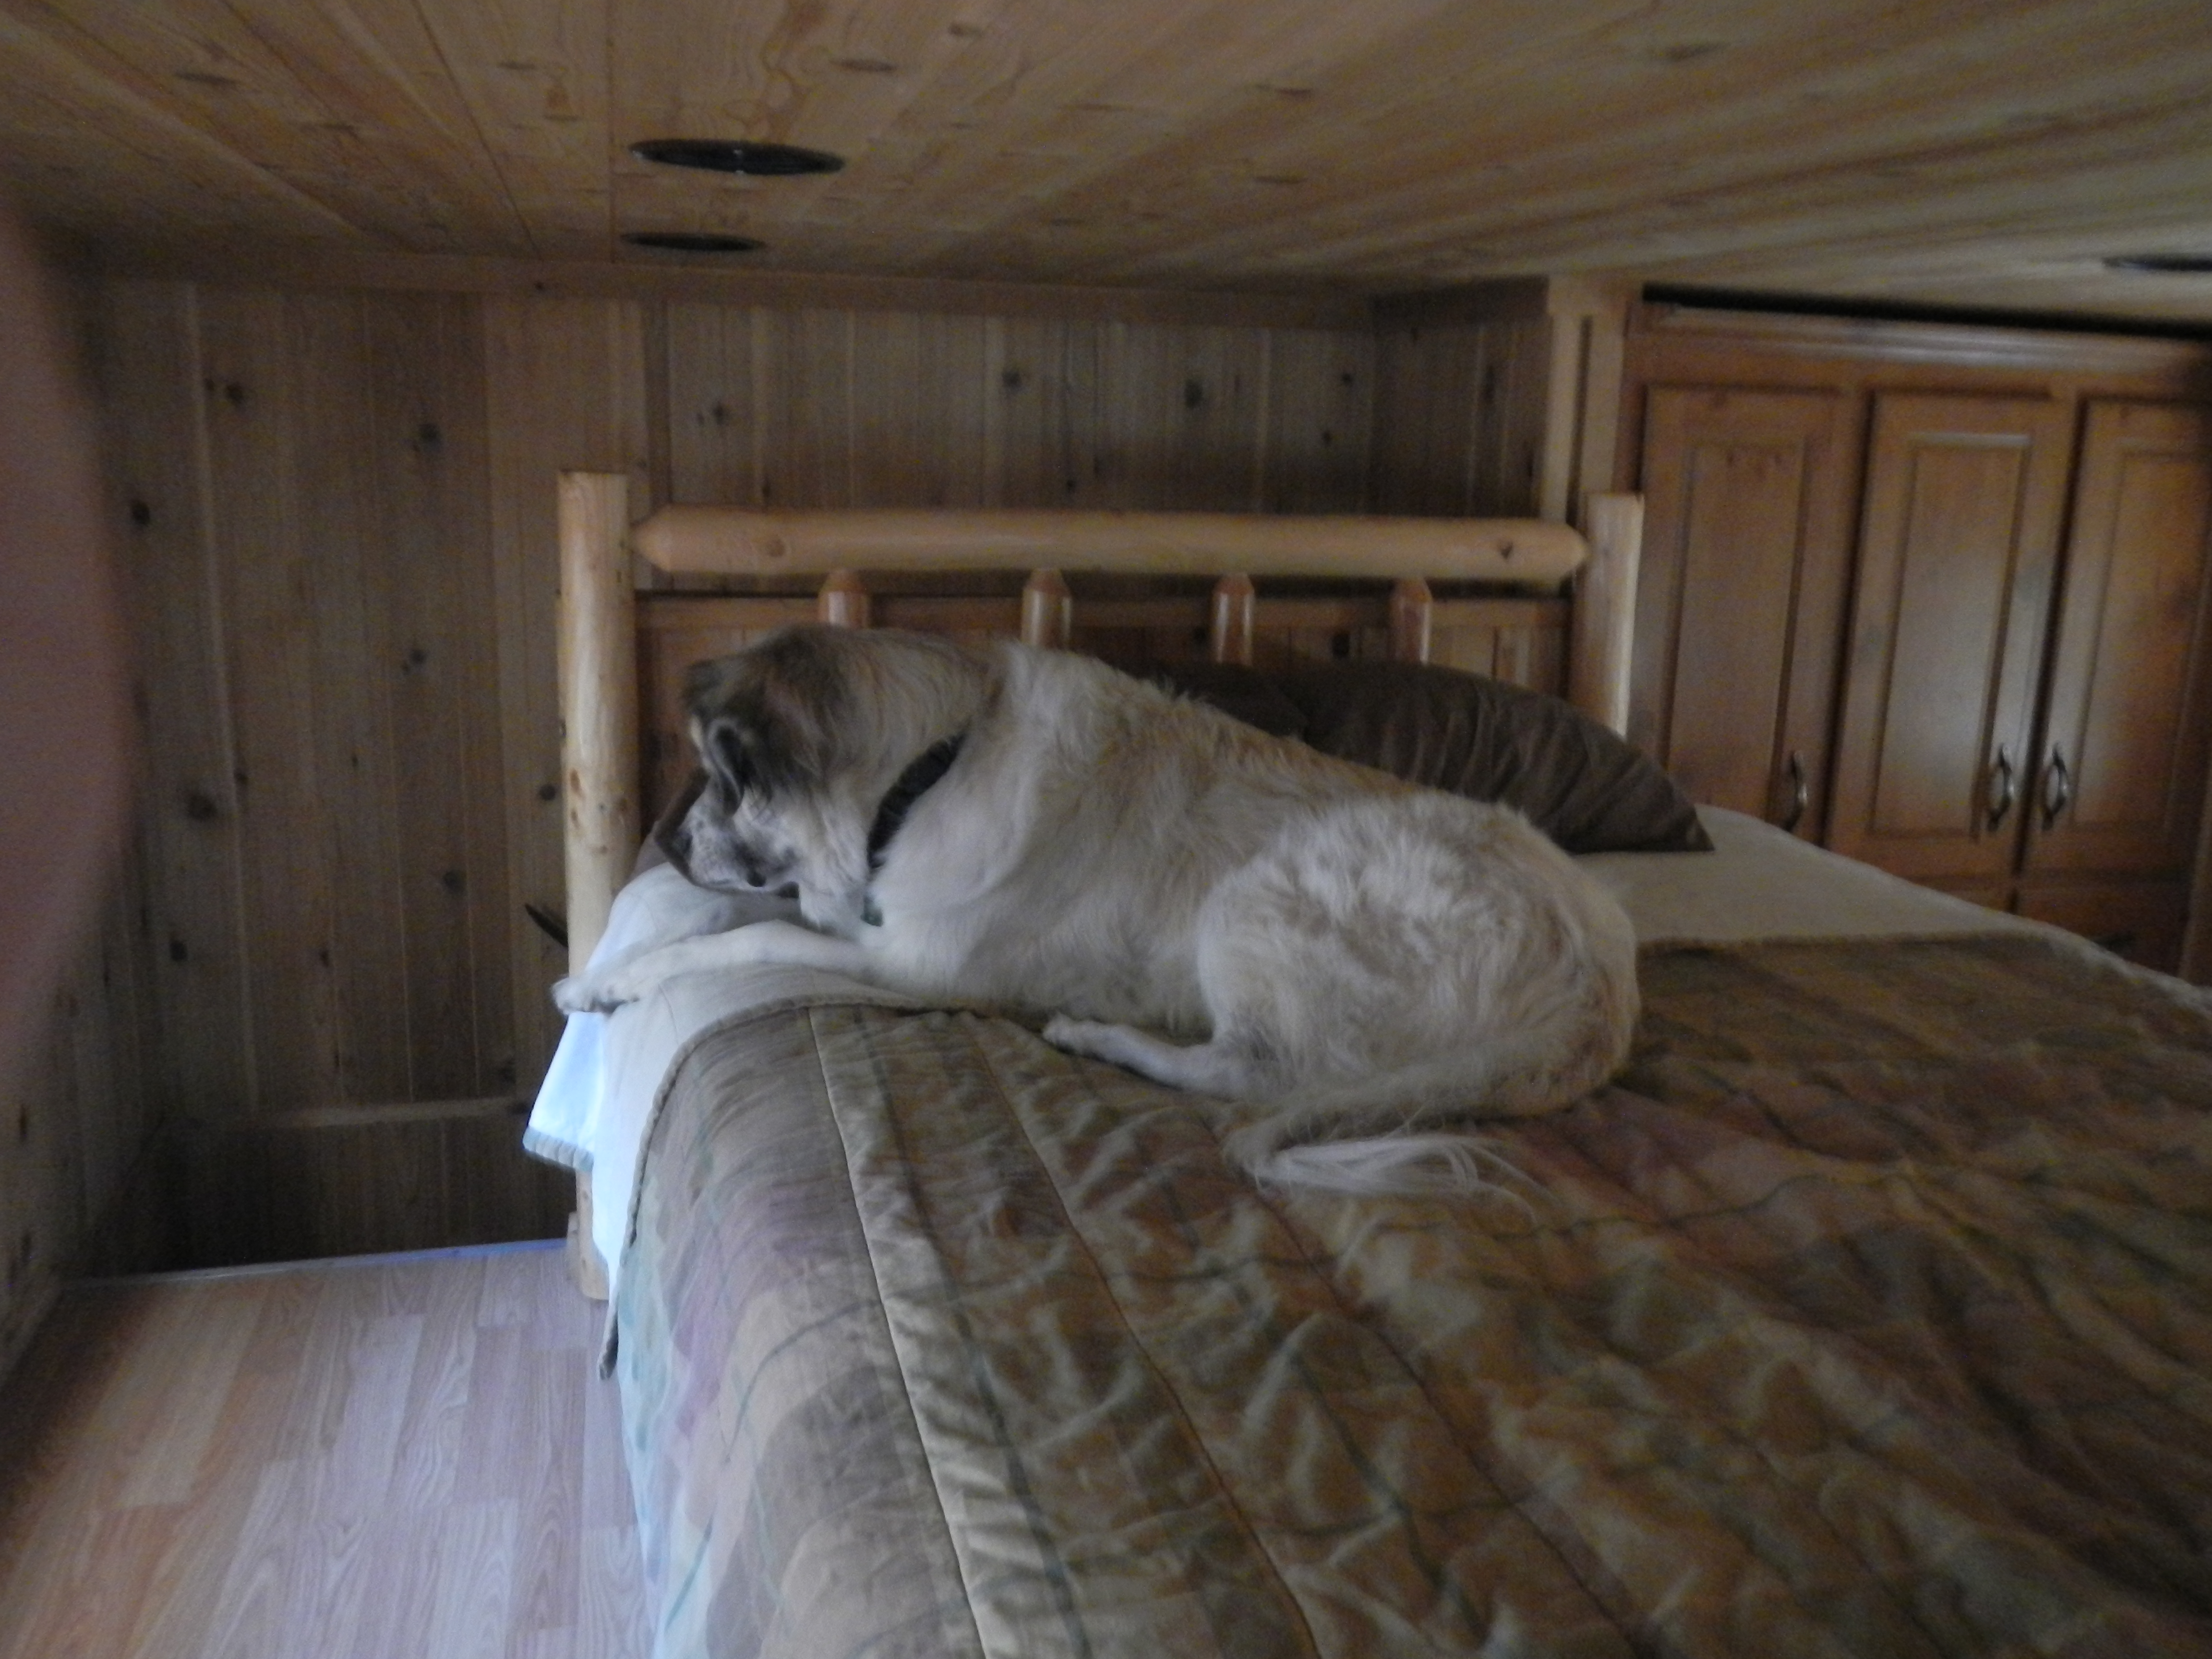 It's good we got the larger cabin with the loft, so I can have my own bedroom